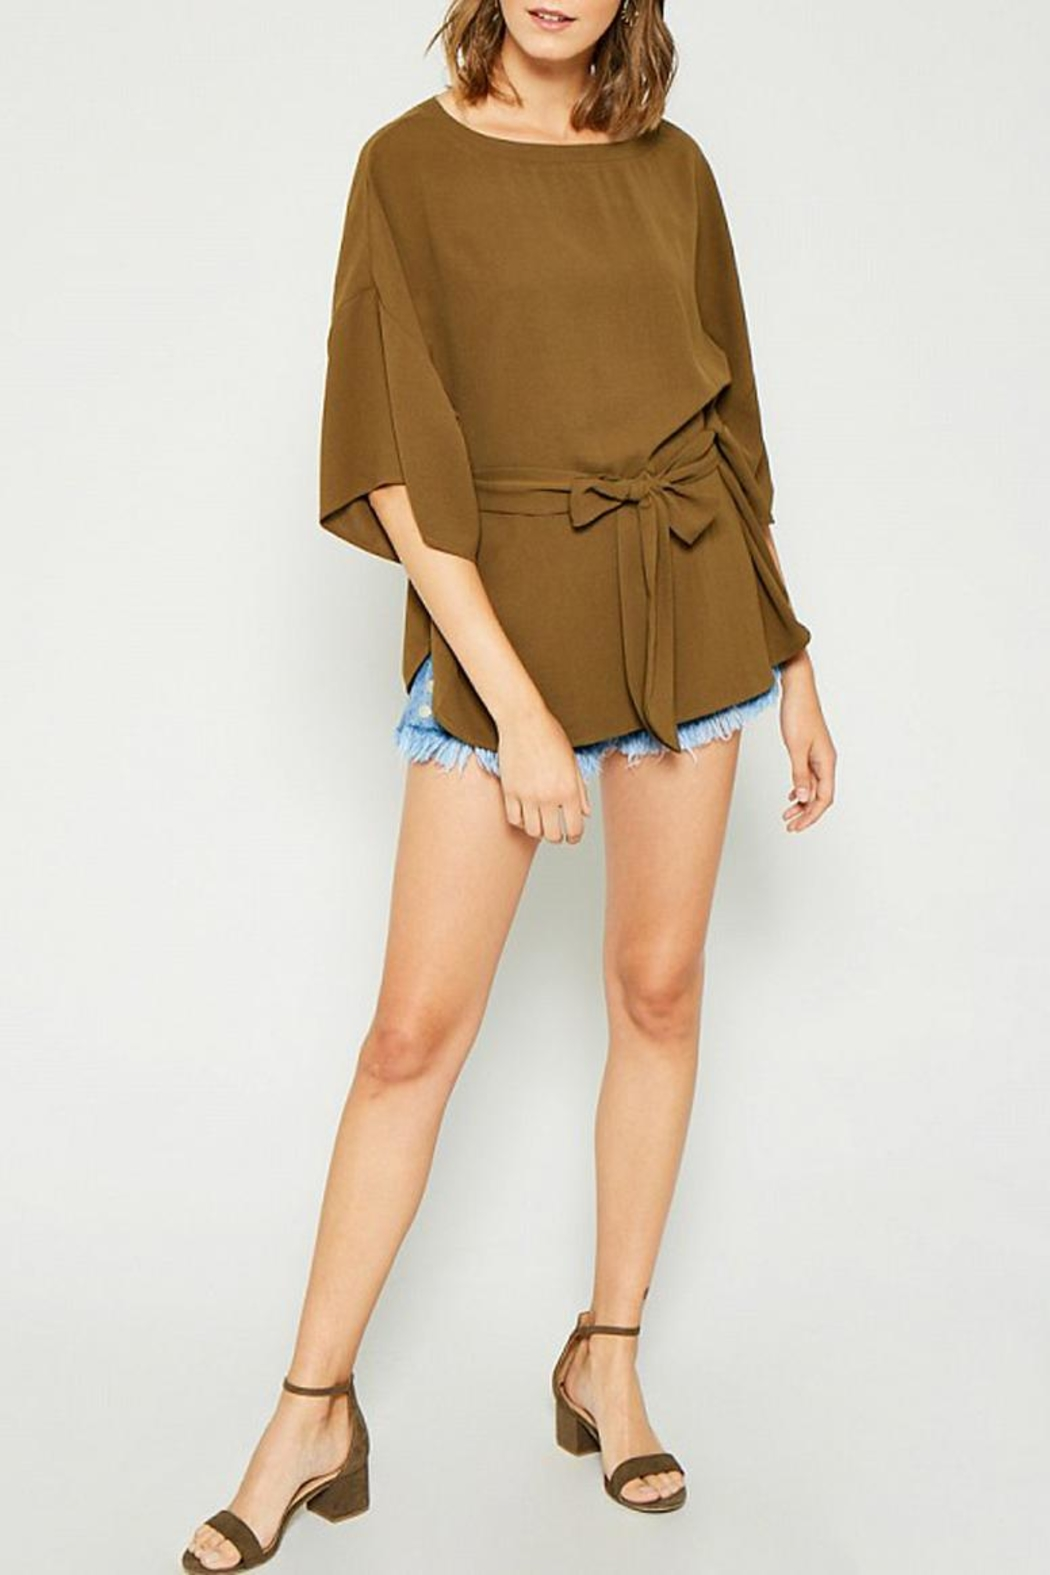 Hayden Los Angeles Olive Batwing Front-Tie-Blouse - Back Cropped Image